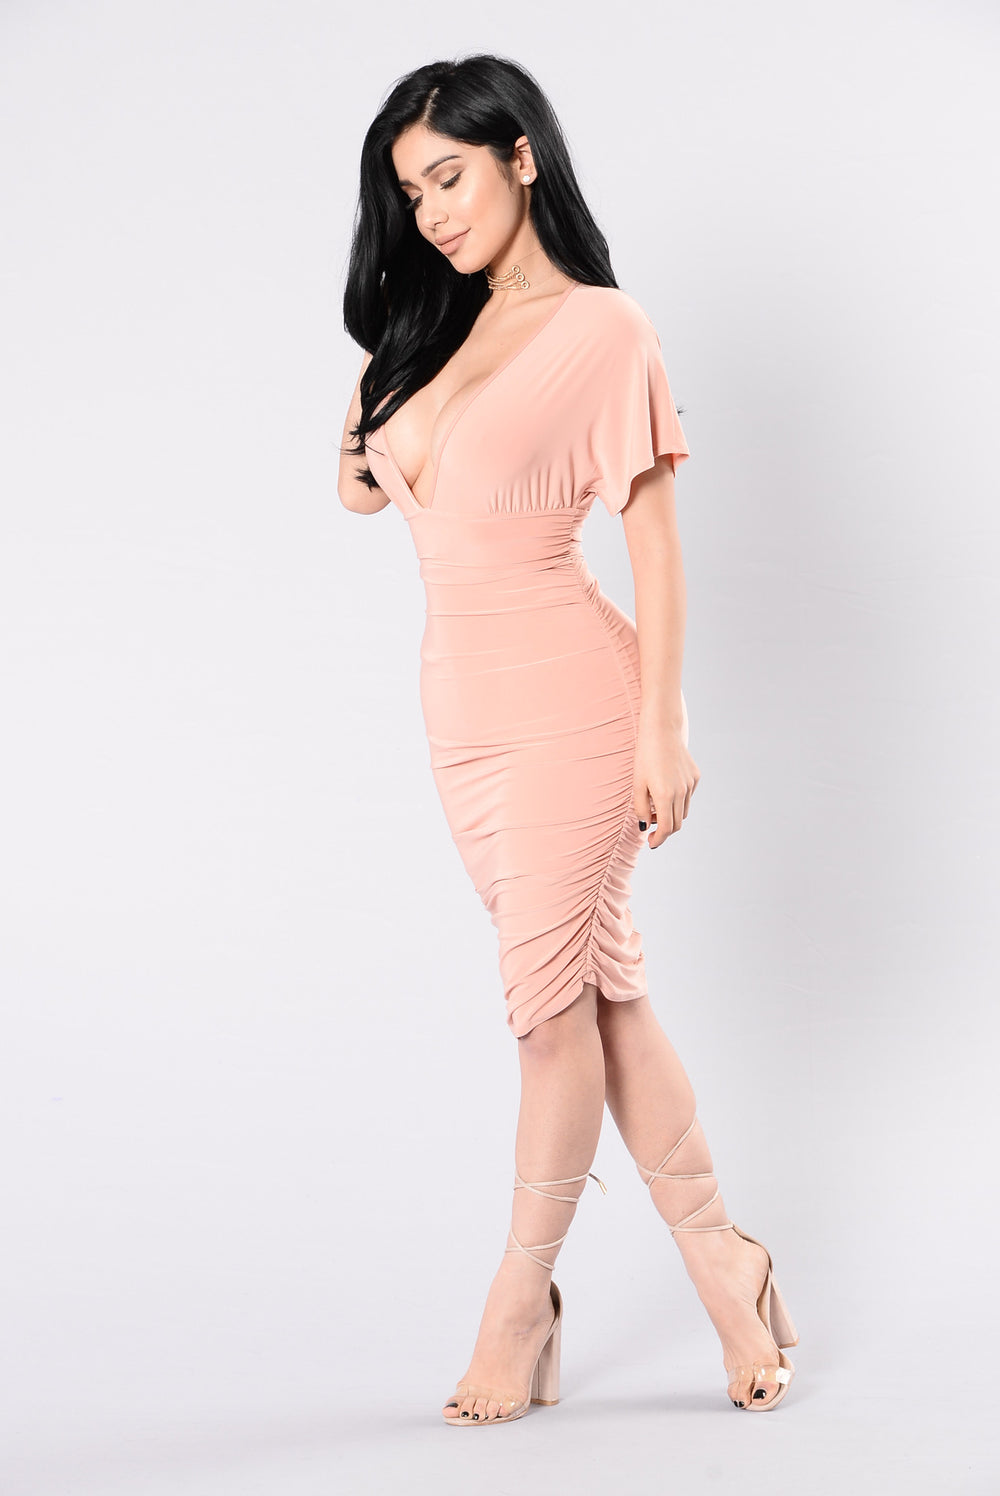 Confessions Of My Love Dress - Blush